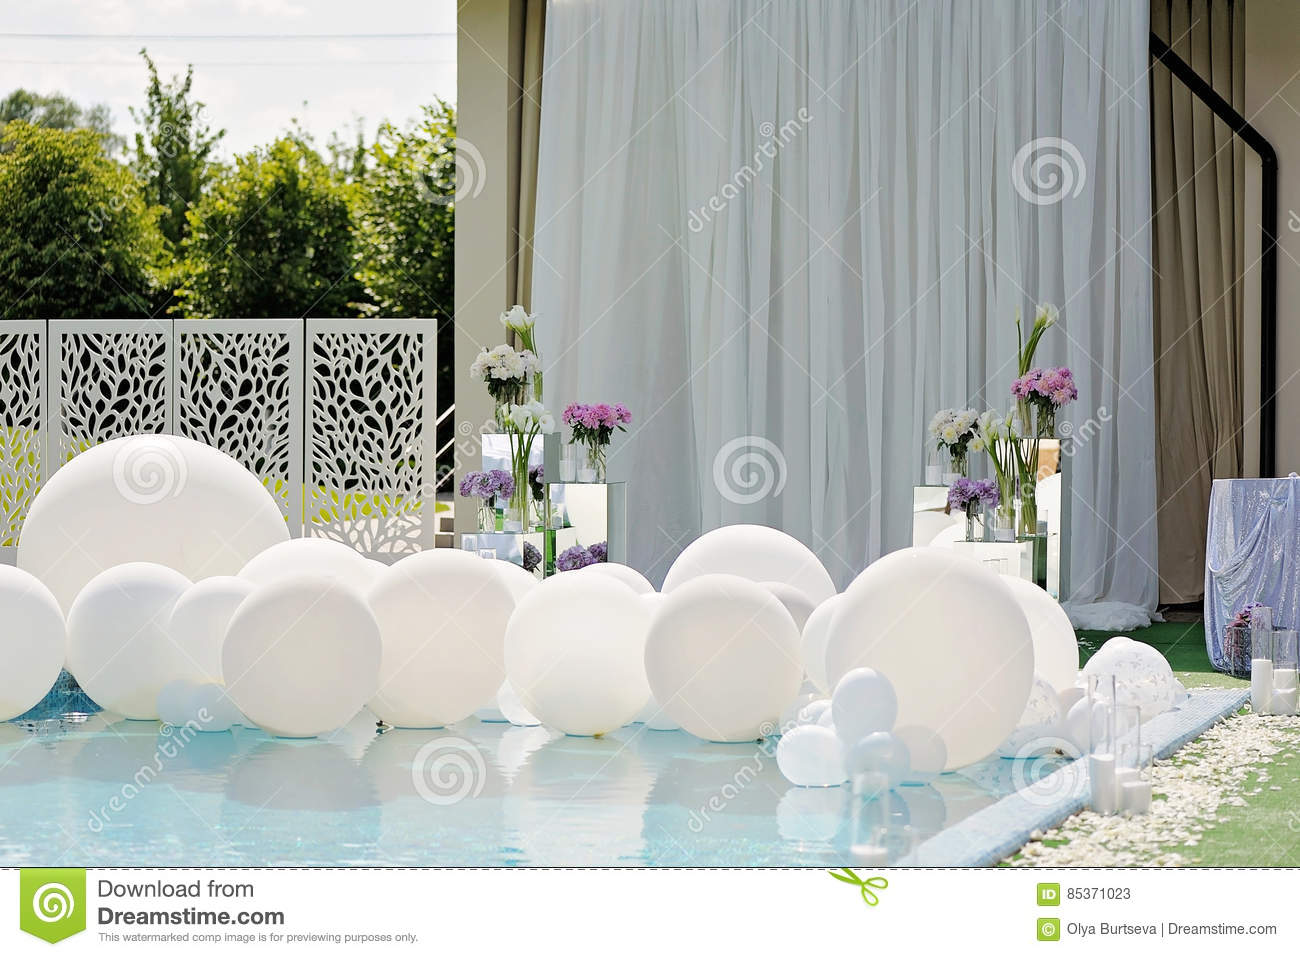 Decorations For The Wedding Ceremony By The Pool With Blue Water